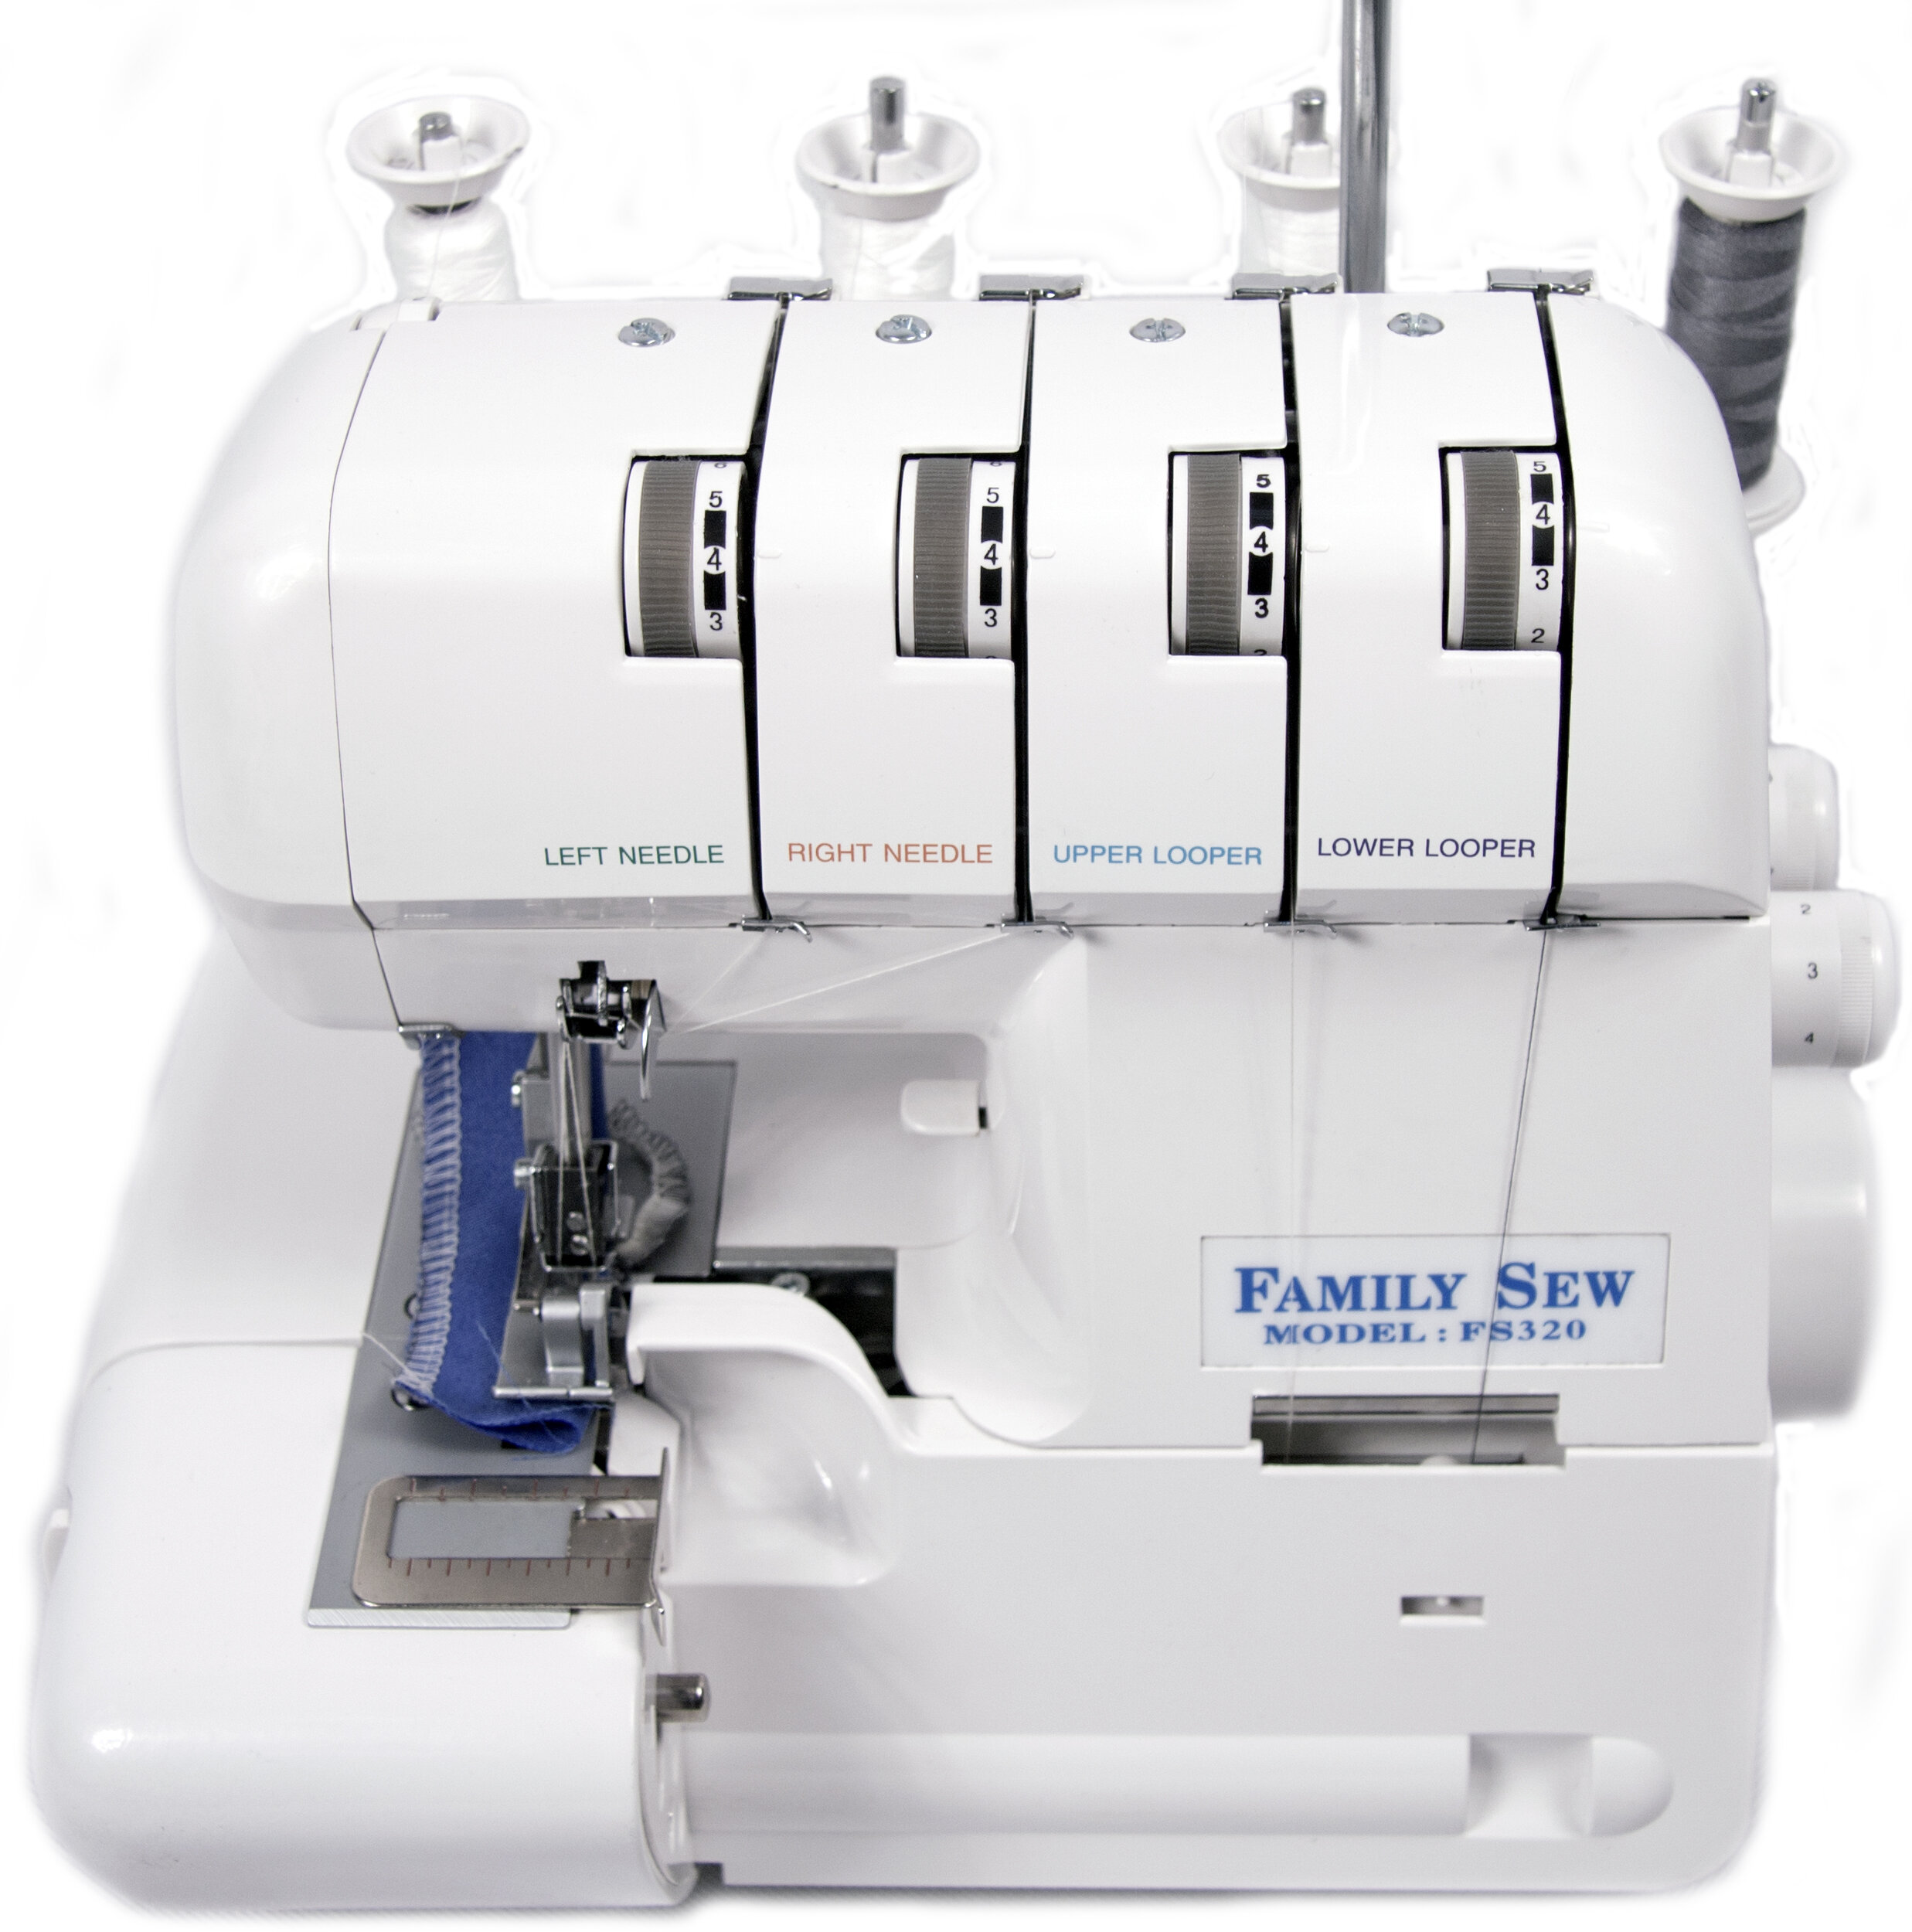 China Feiyue Overlock Serger Wayfair Sewing Machine Diagram Car Interior Design